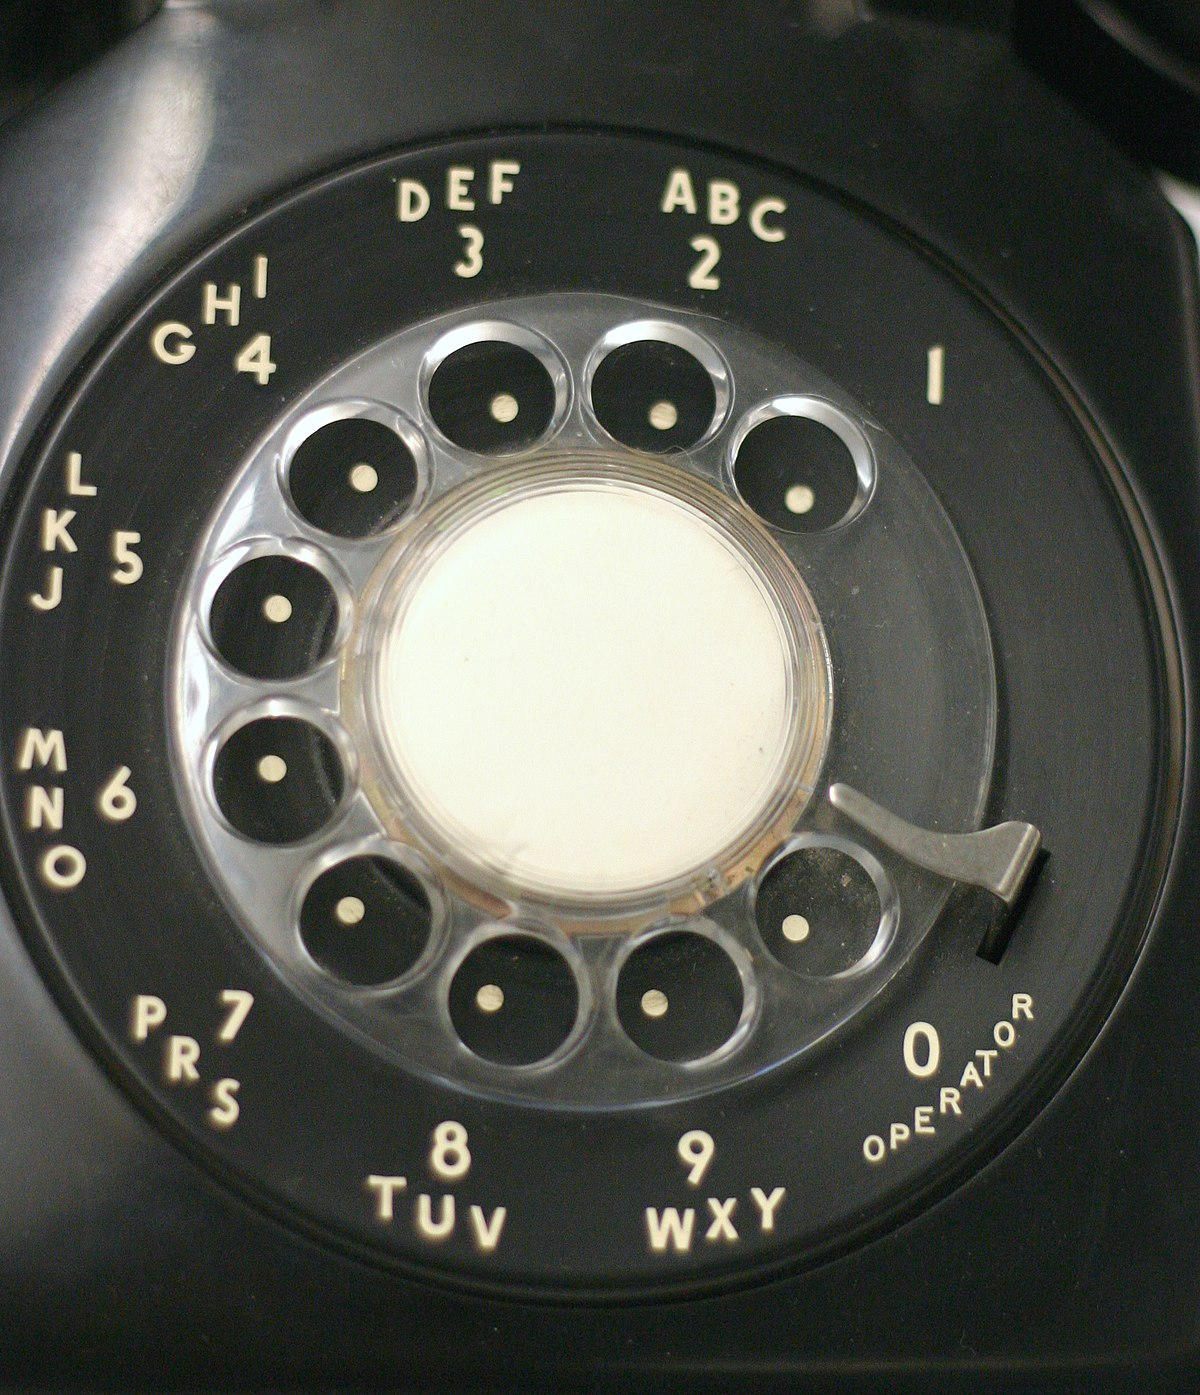 hight resolution of diagram of the old telephone